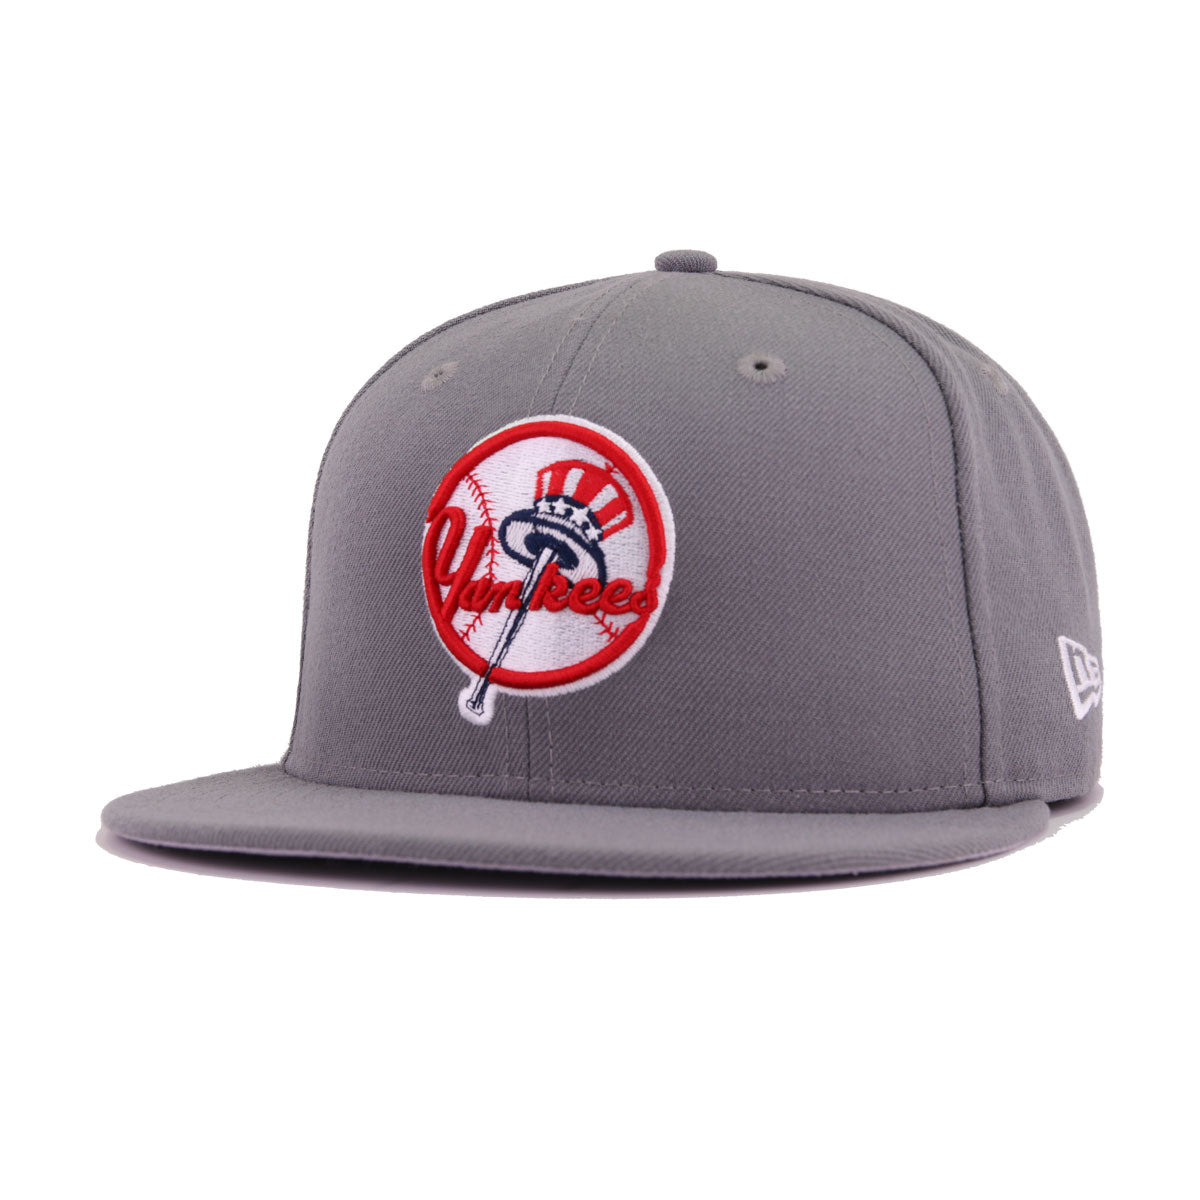 quality design 75e77 cfa83 New York Yankees Storm Grey Tophat New Era 9Fifty Snapback